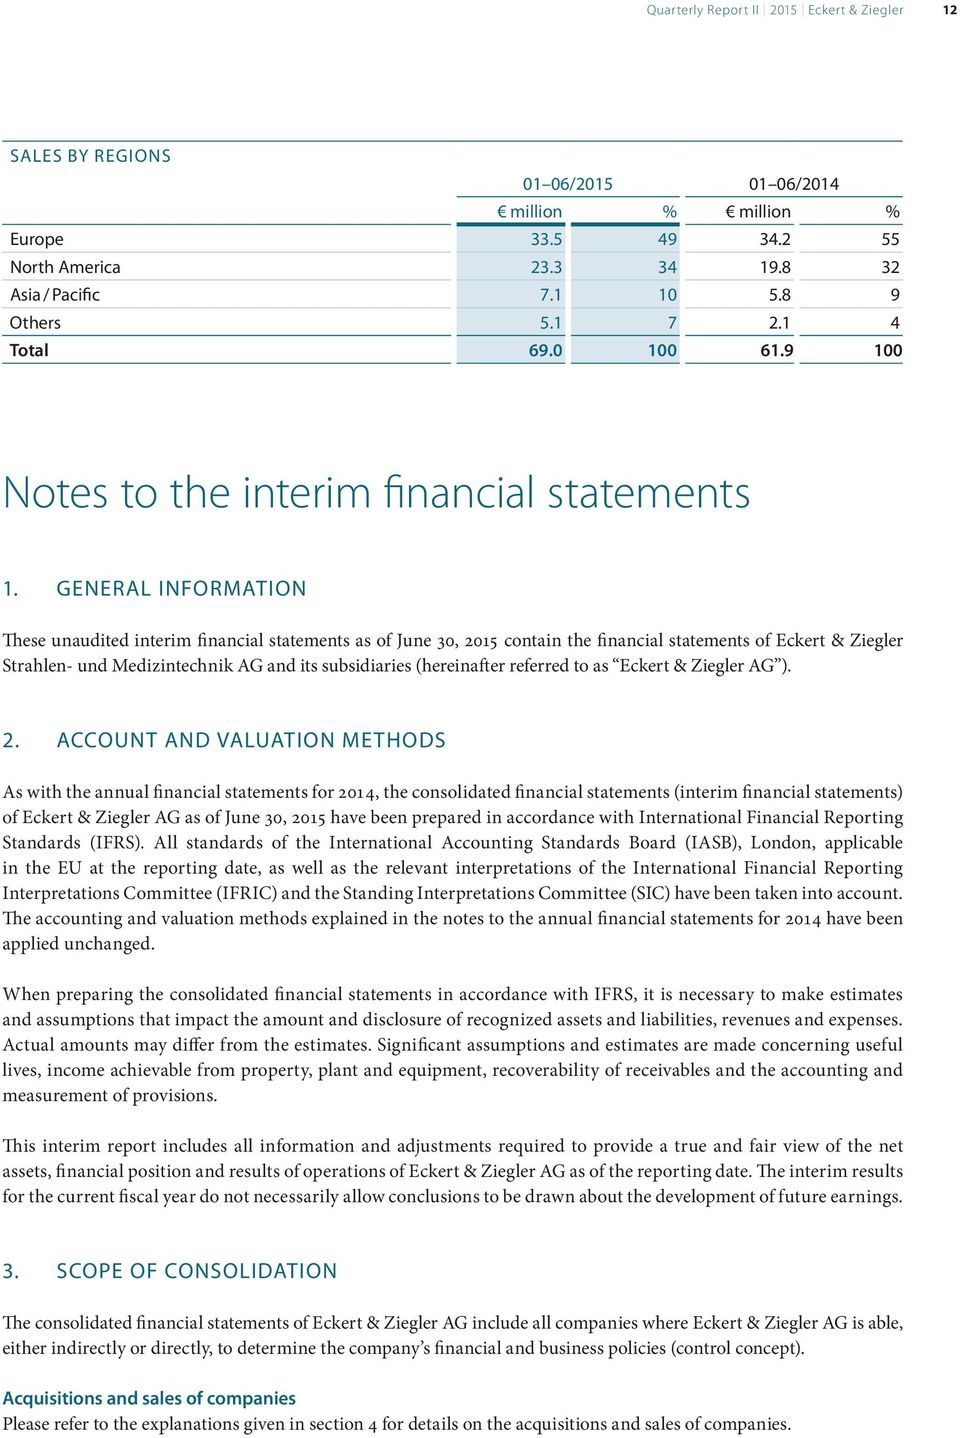 GENERAL INFORMATION These unaudited interim financial statements as of June 30, 2015 contain the financial statements of Eckert & Ziegler Strahlen- und Medizintechnik AG and its subsidiaries